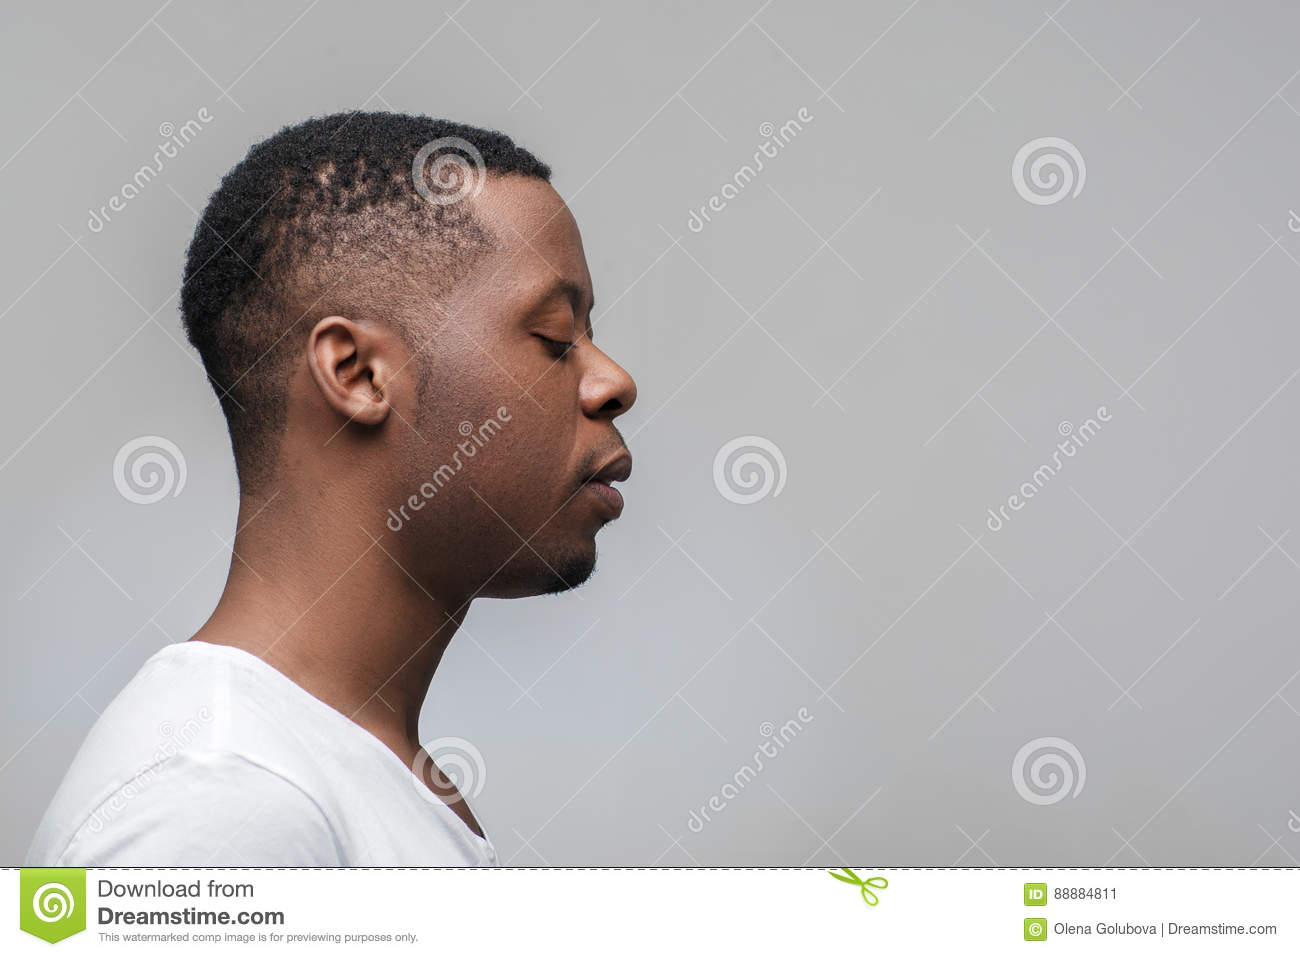 black man profile picture